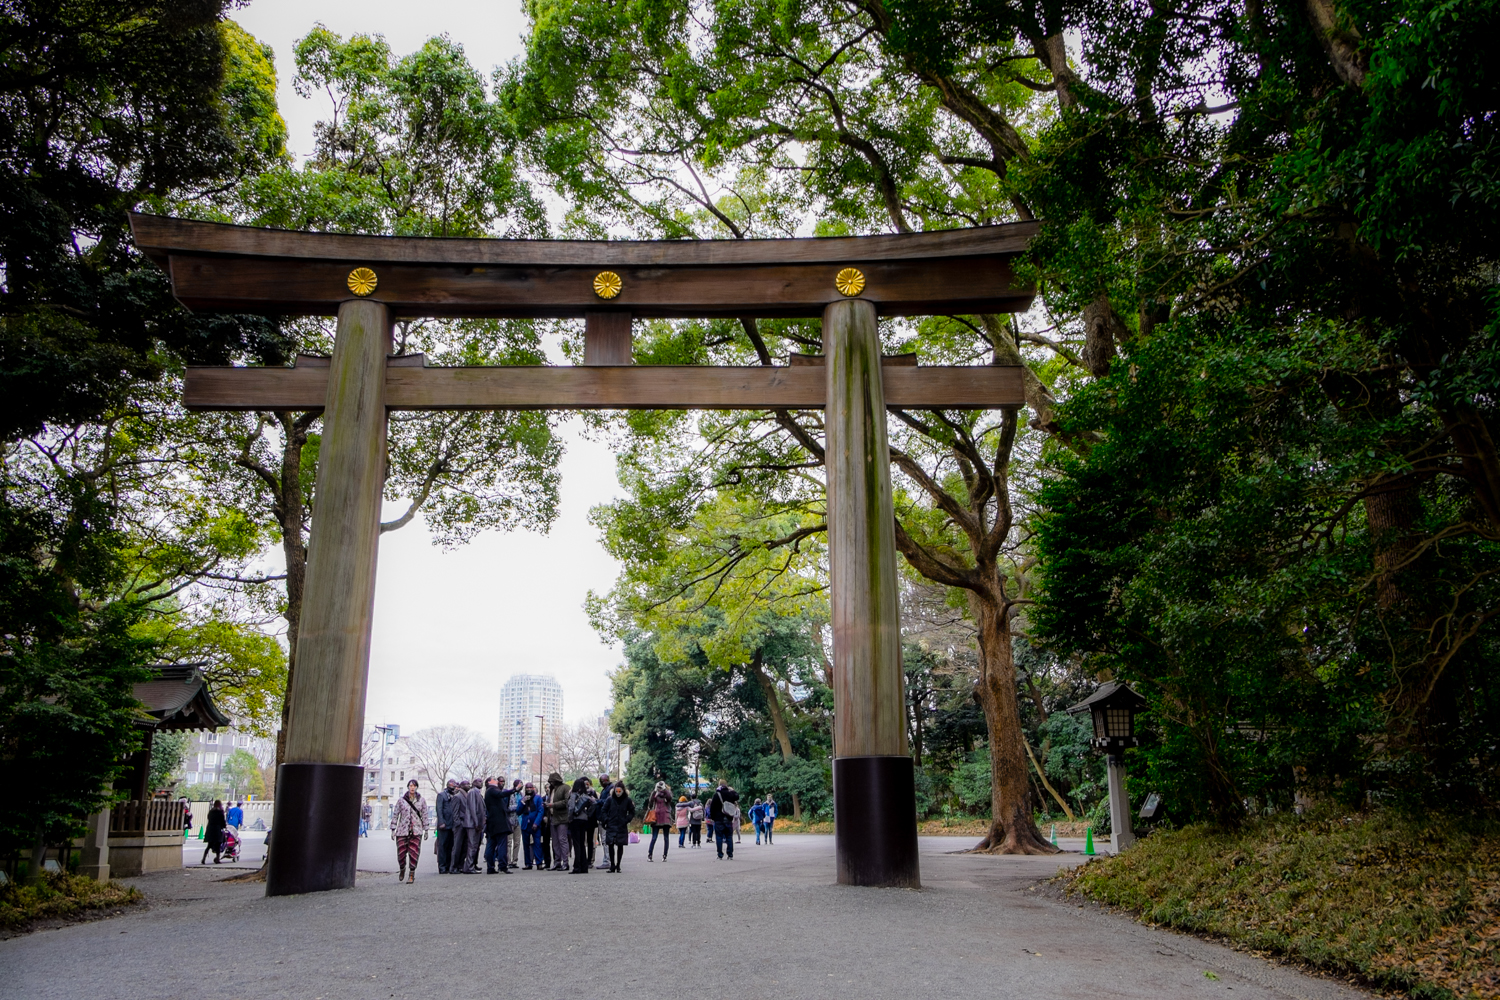 One of the massive gates at the entry to Yoyogi Park